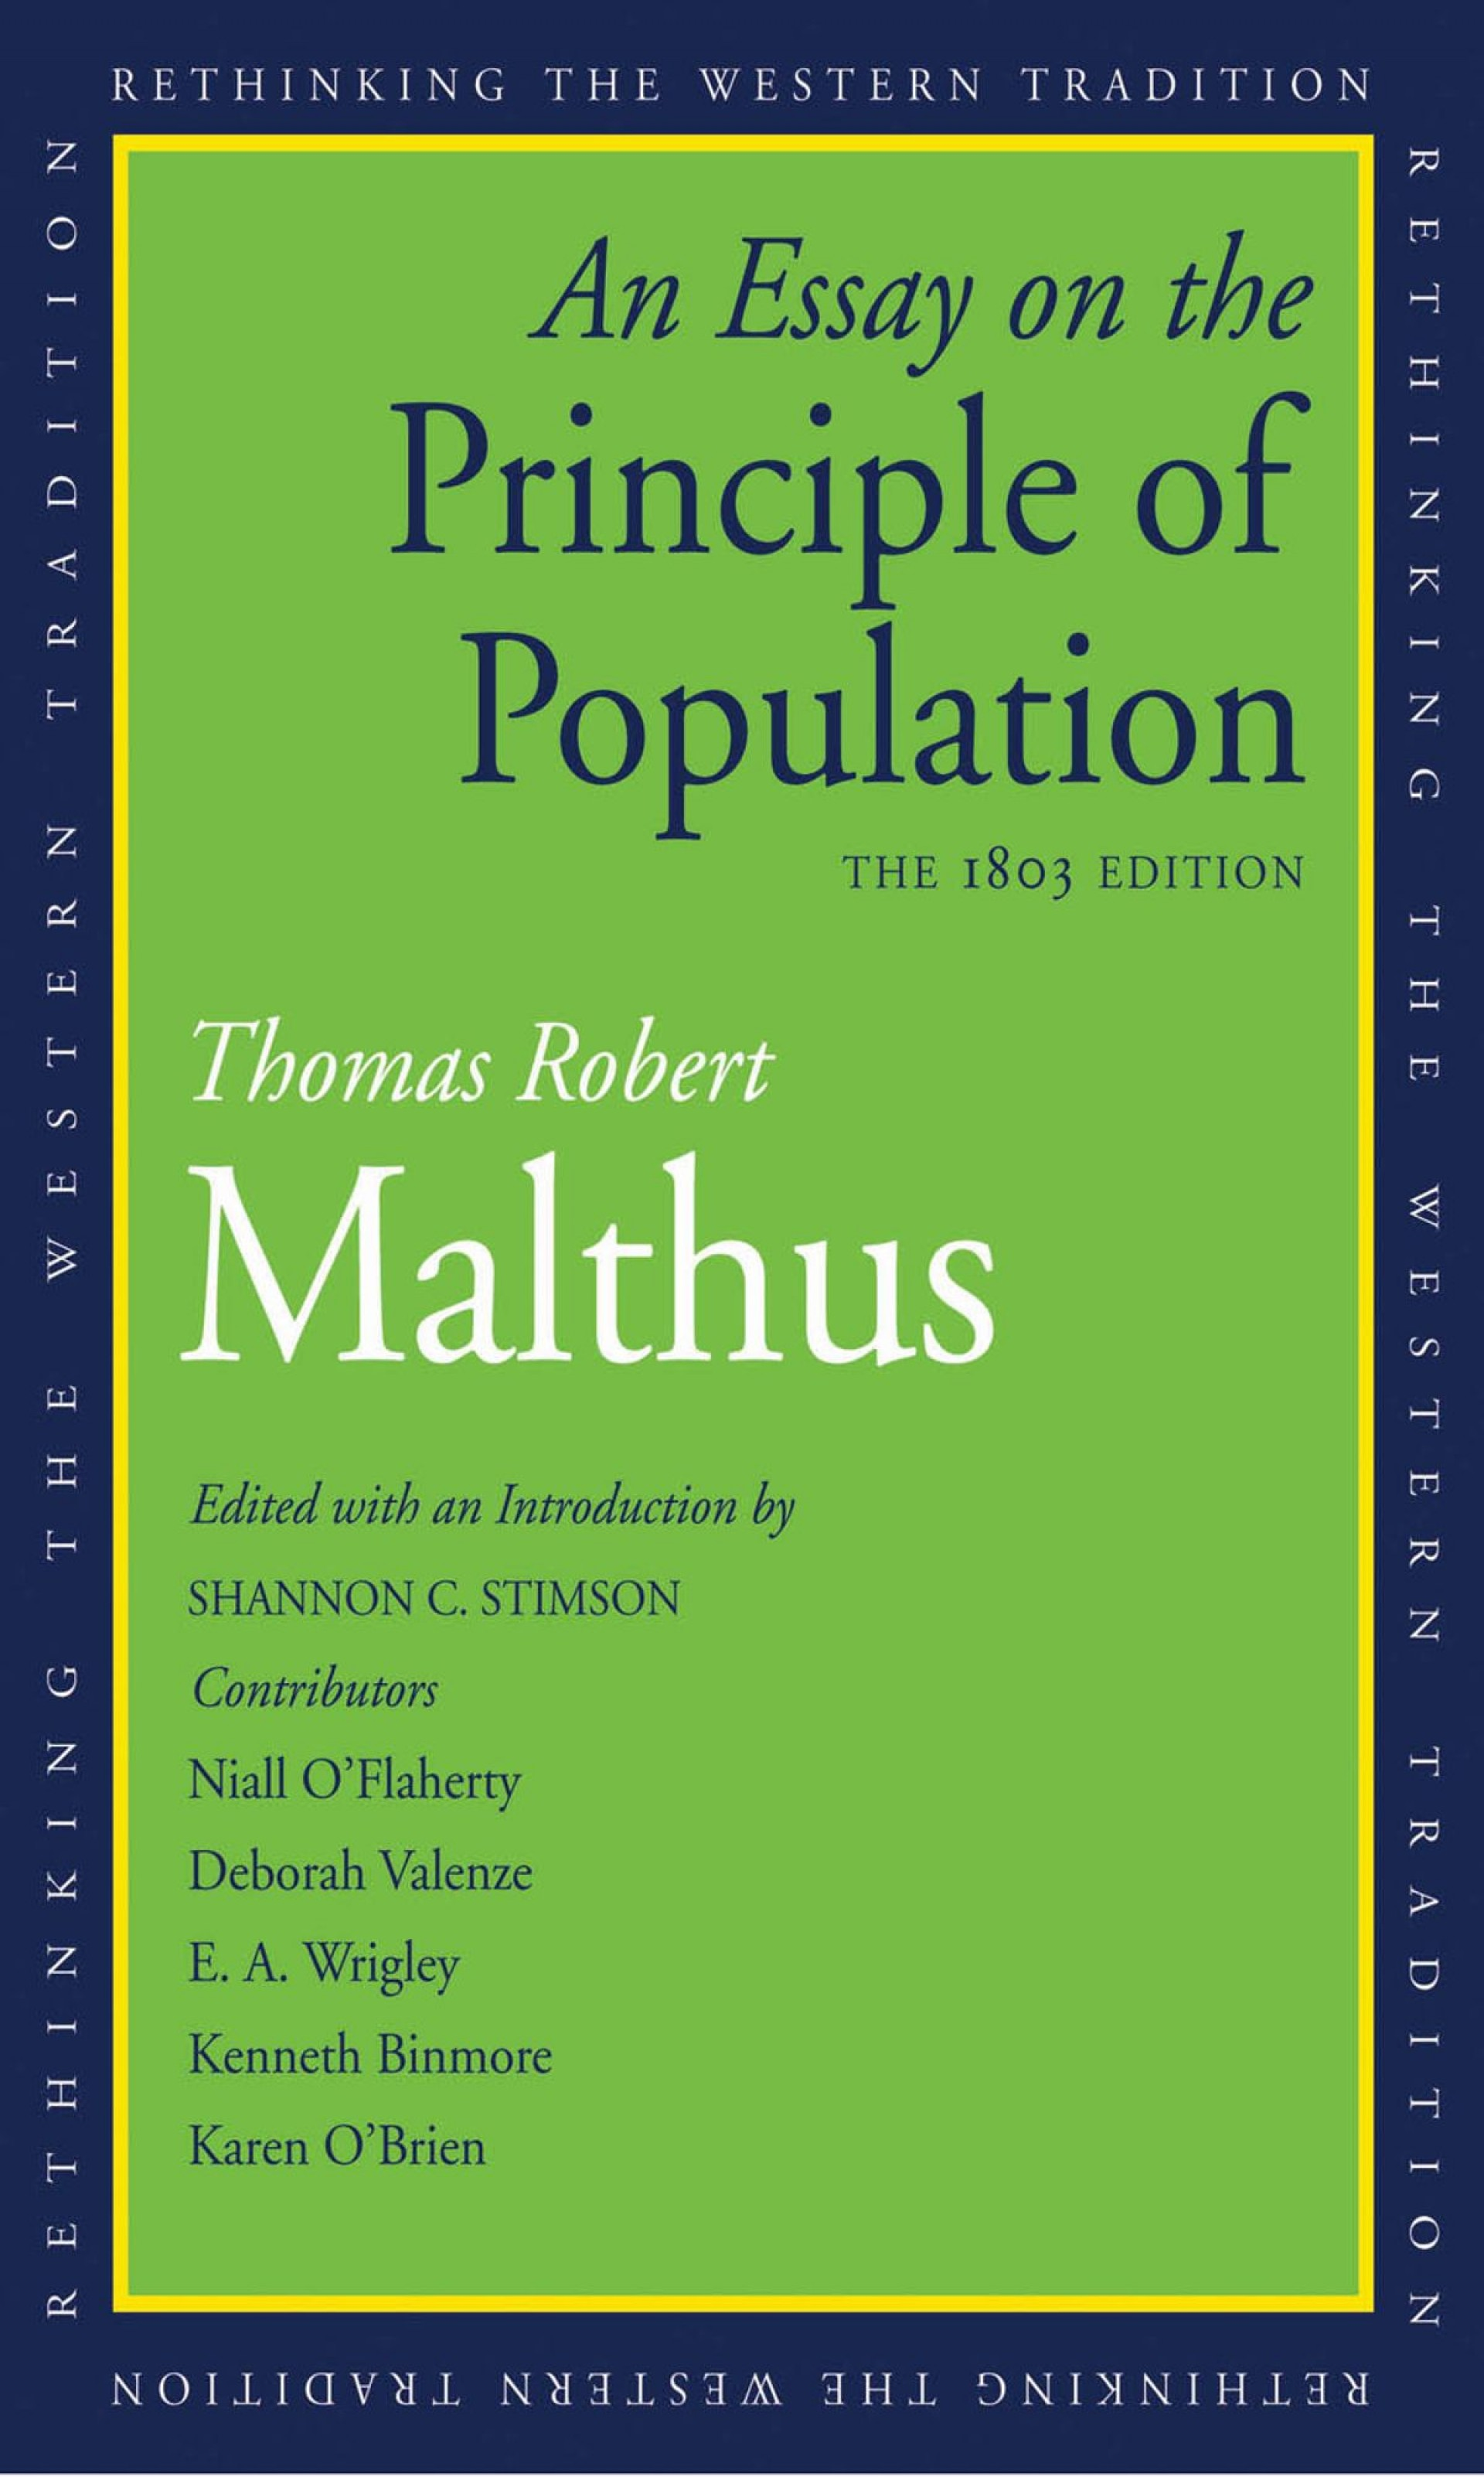 003 Essay On The Principle Of Population Example An Singular Thomas Malthus Sparknotes Advocated Ap Euro 1920